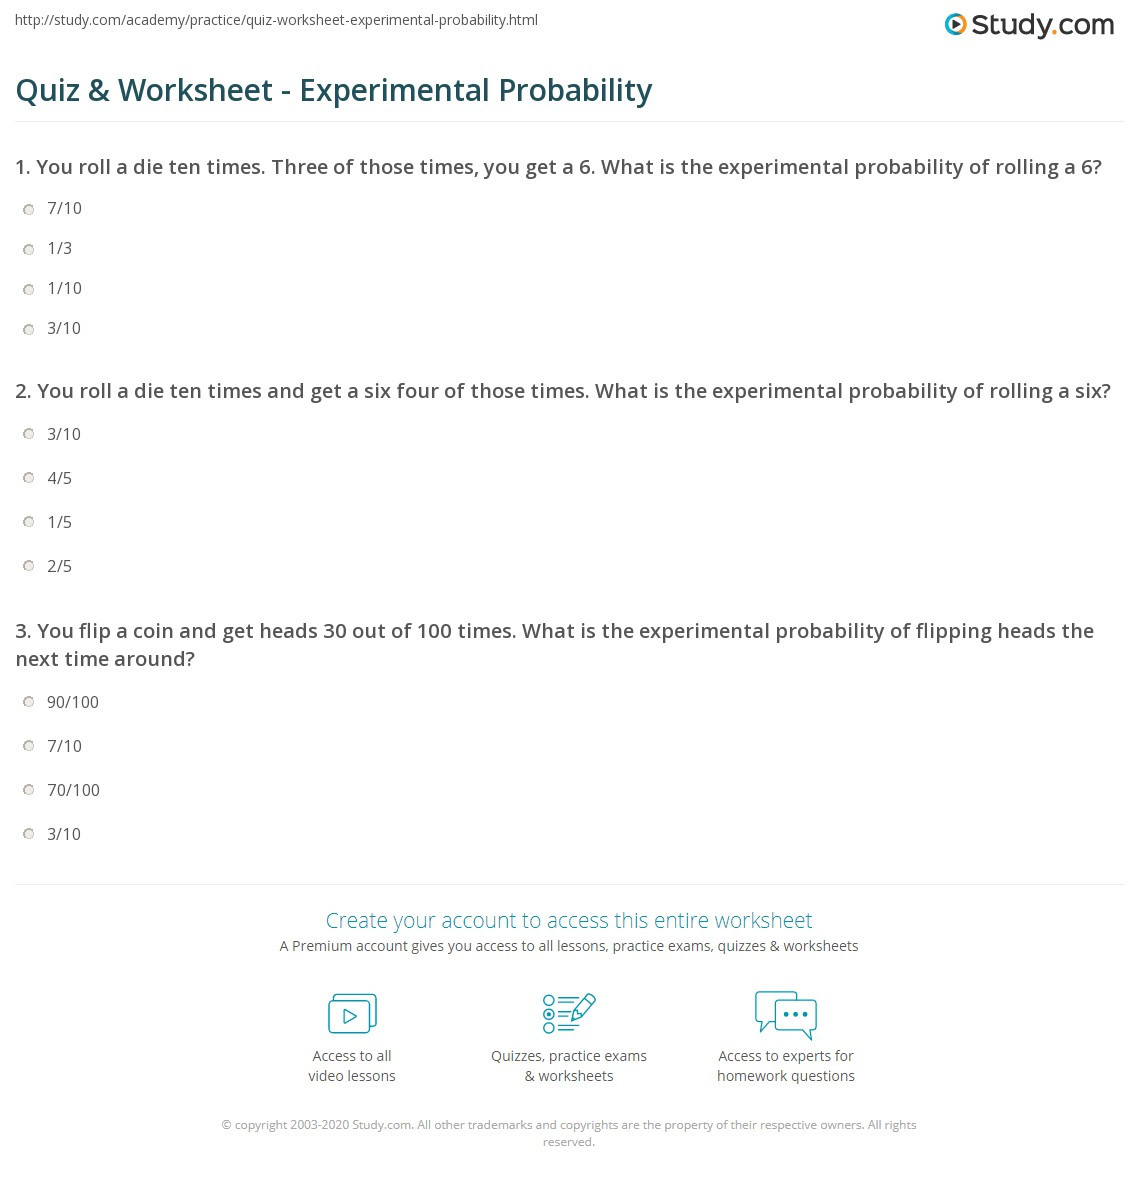 Probability Worksheet 5th Grade Quiz & Worksheet Experimental Probability